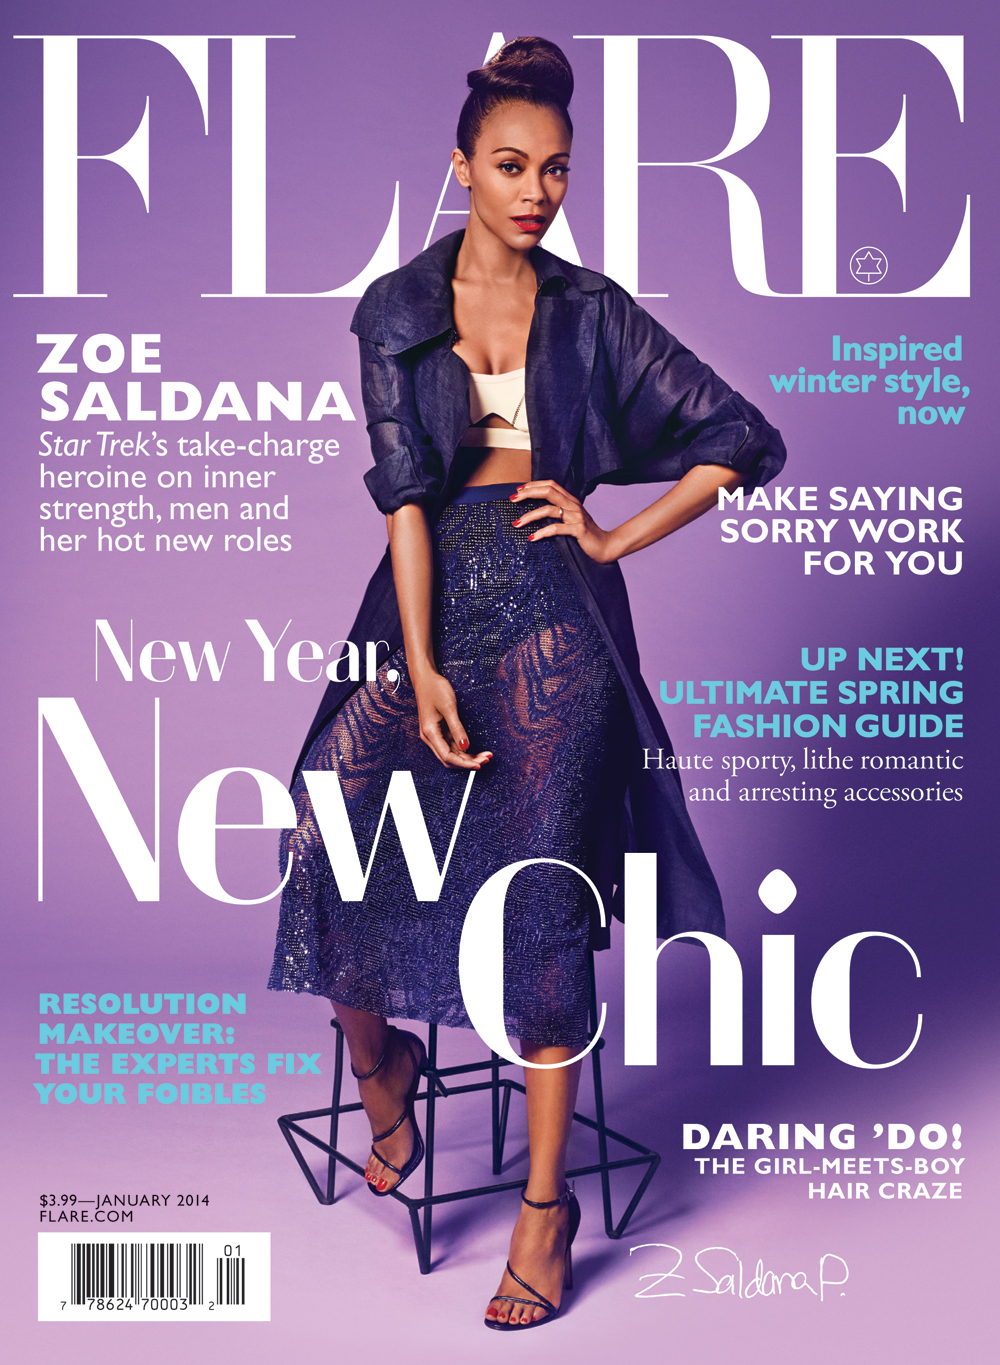 Zoe Saldana covers January issue of Flare